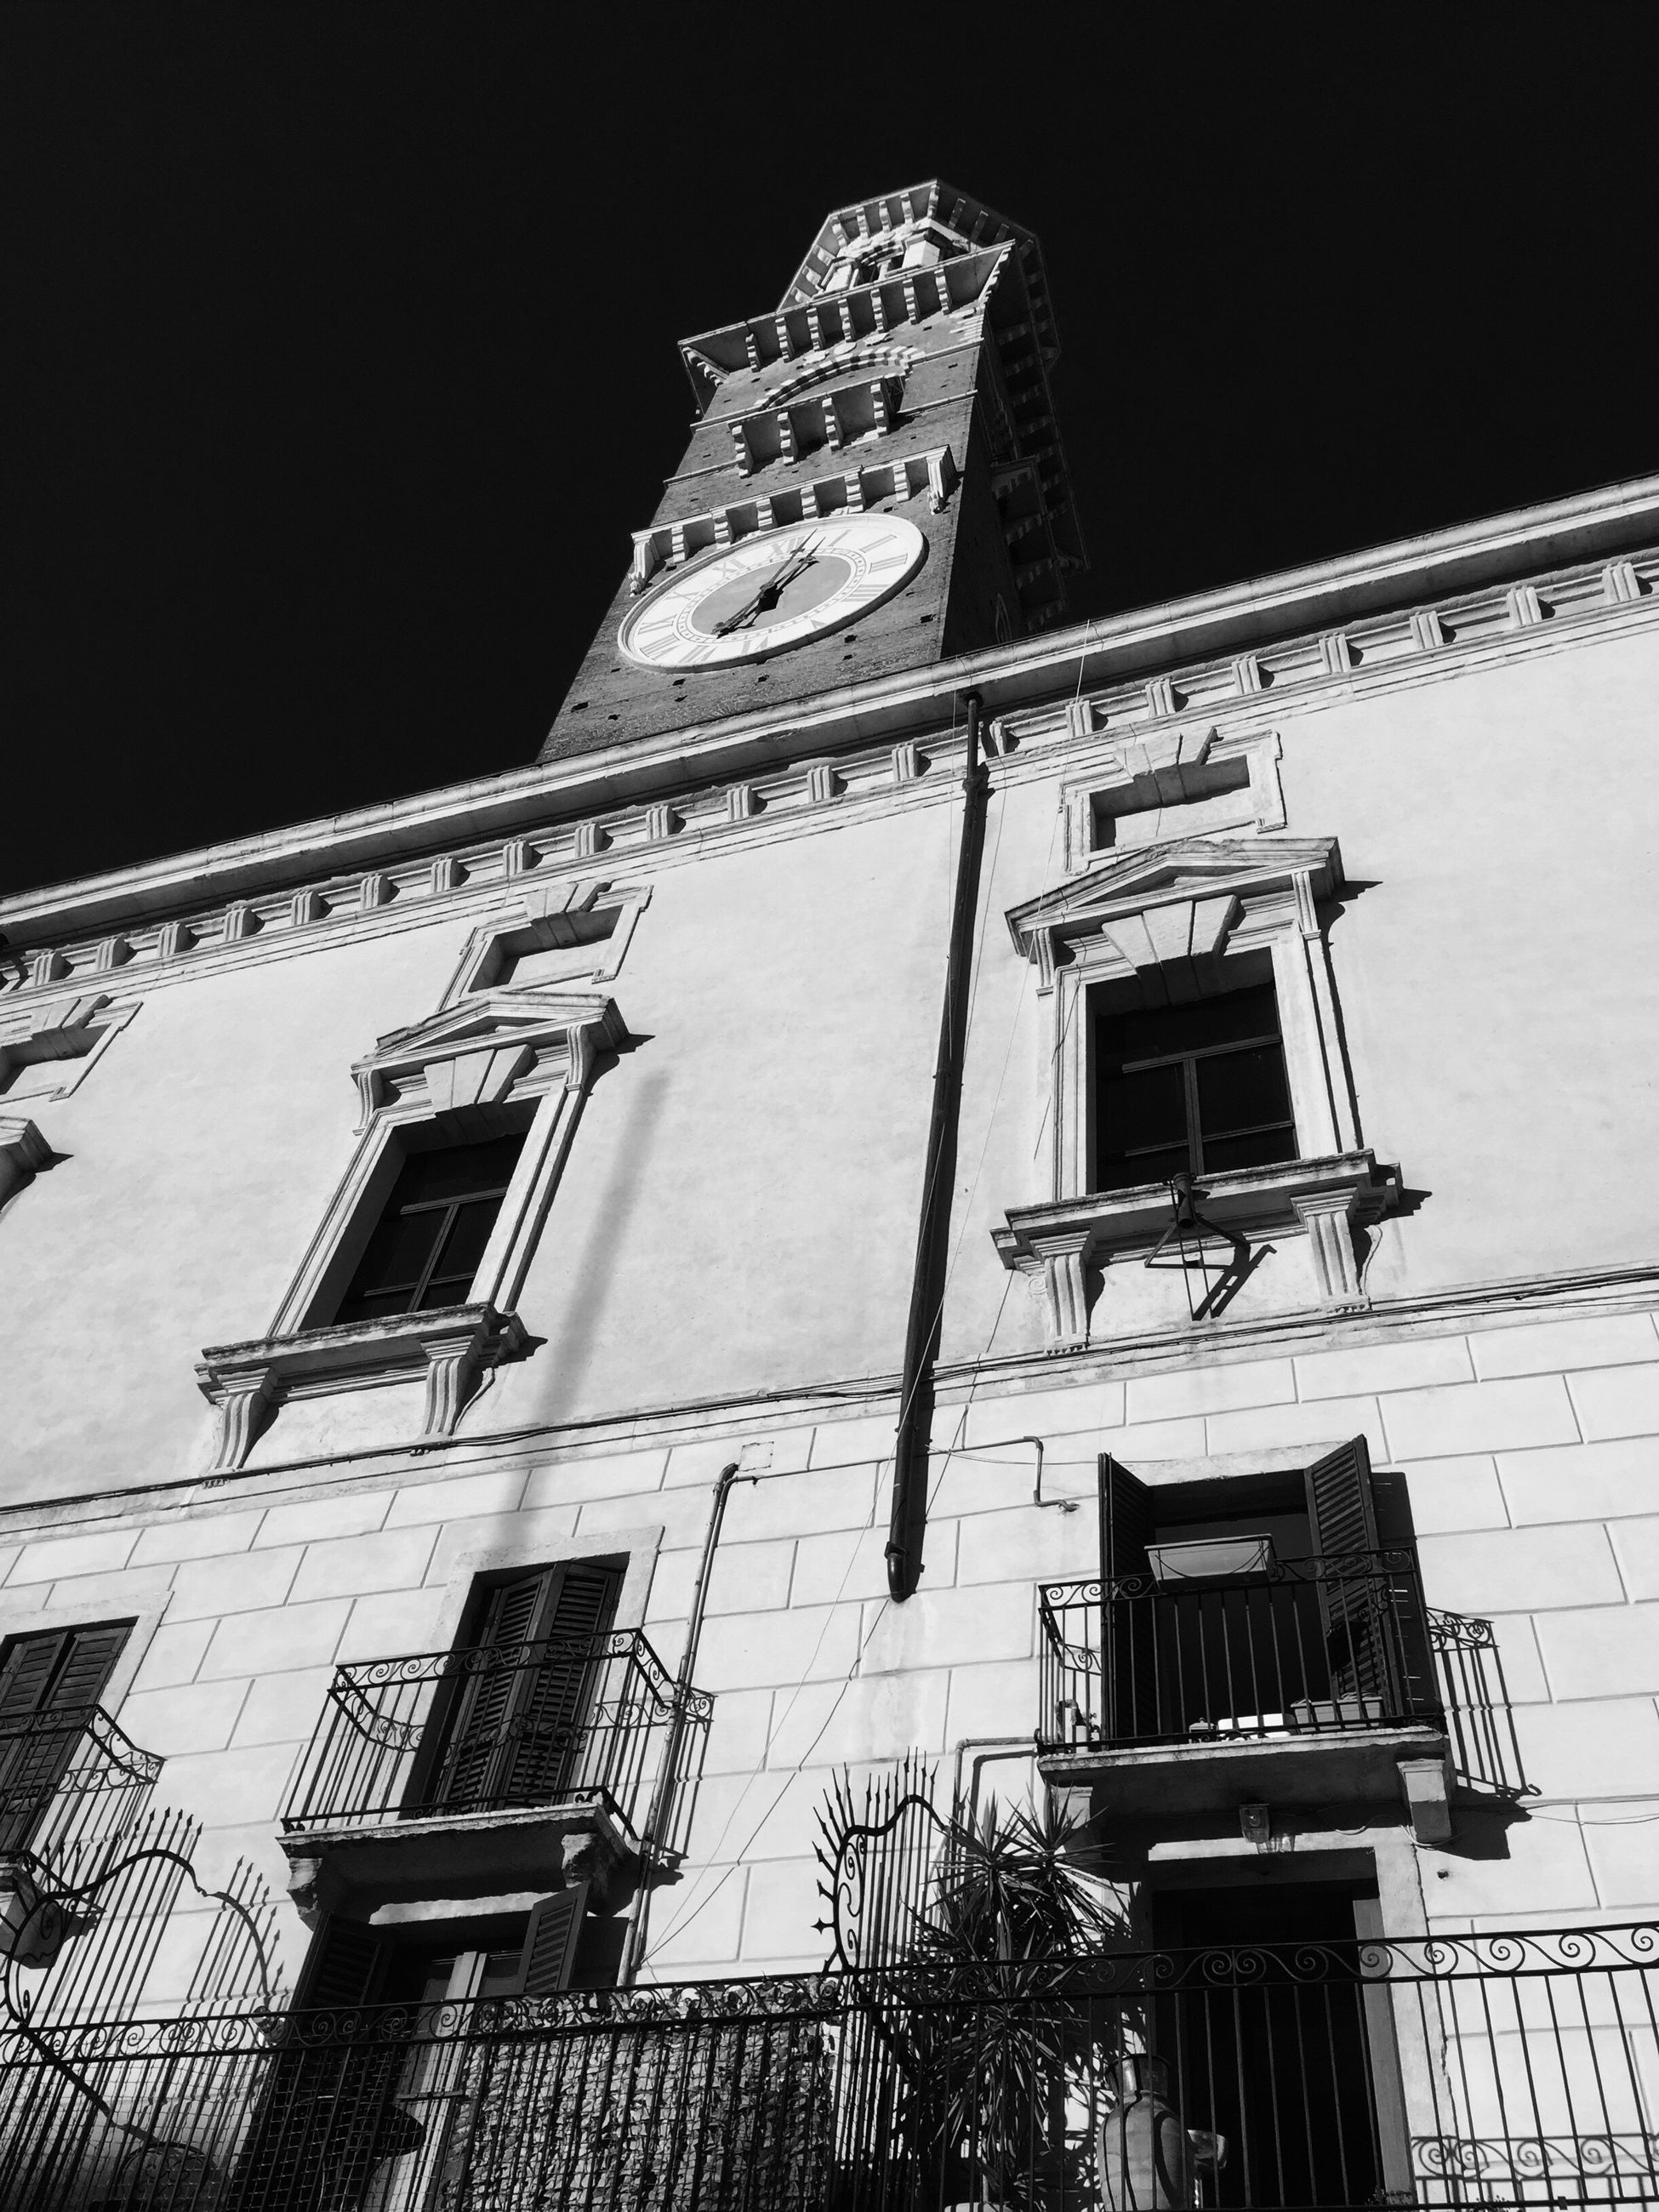 low angle view, architecture, building exterior, built structure, window, balcony, sky, outdoors, day, facade, high section, history, no people, spire